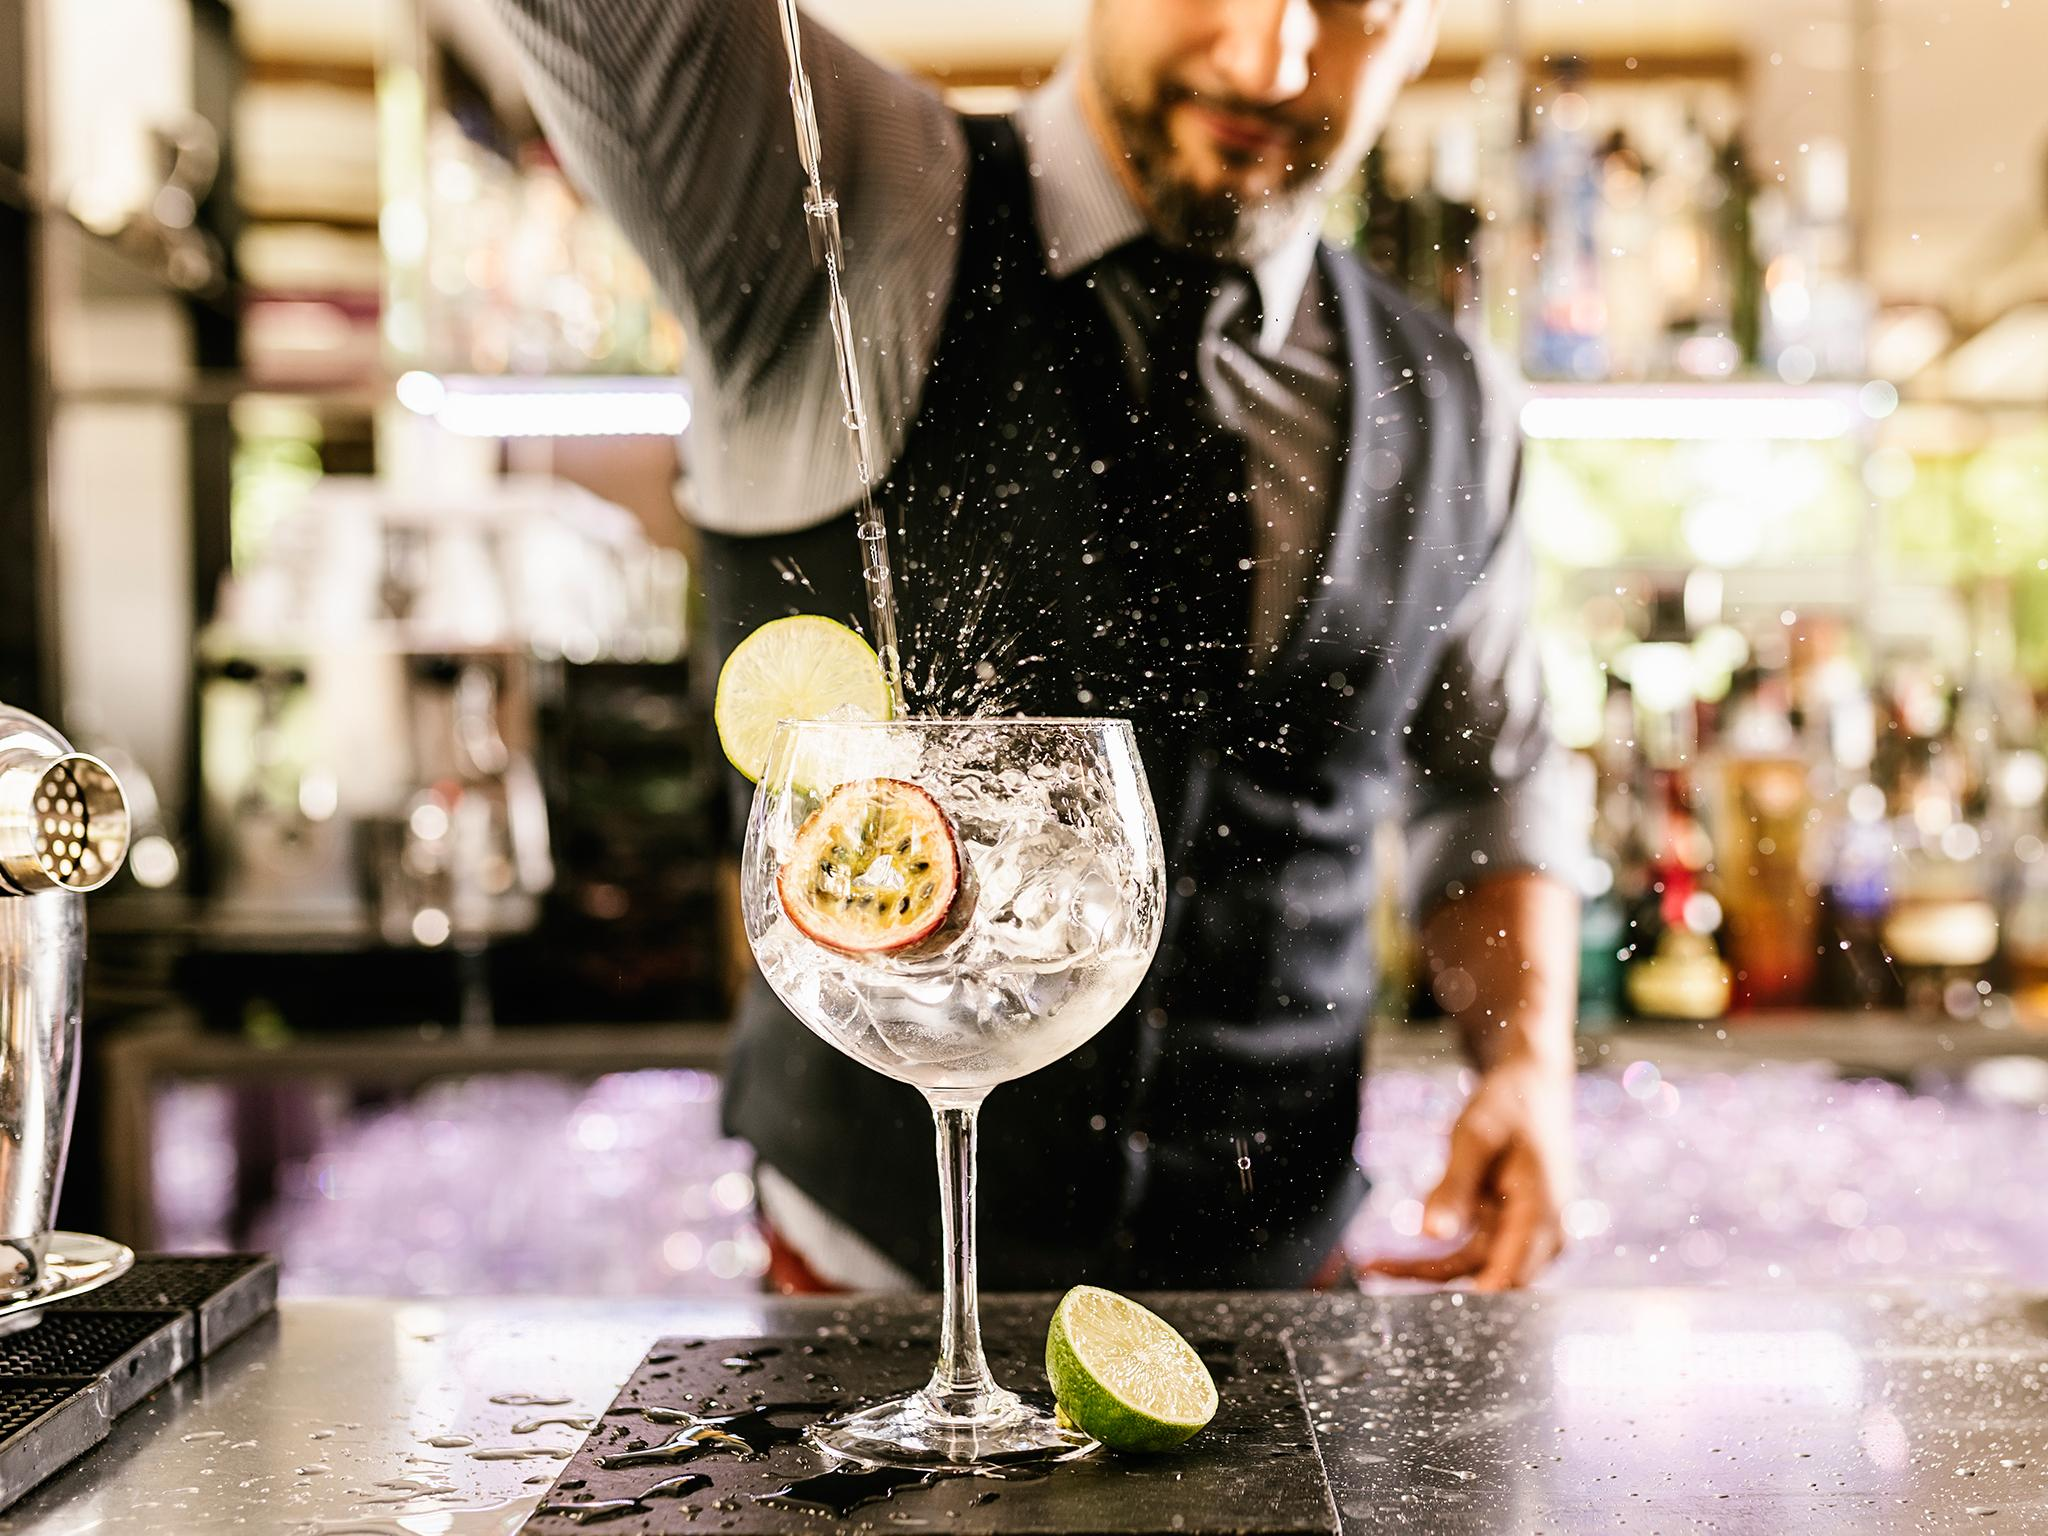 World-leading bartender gives away all his secrets to making the perfect cocktail